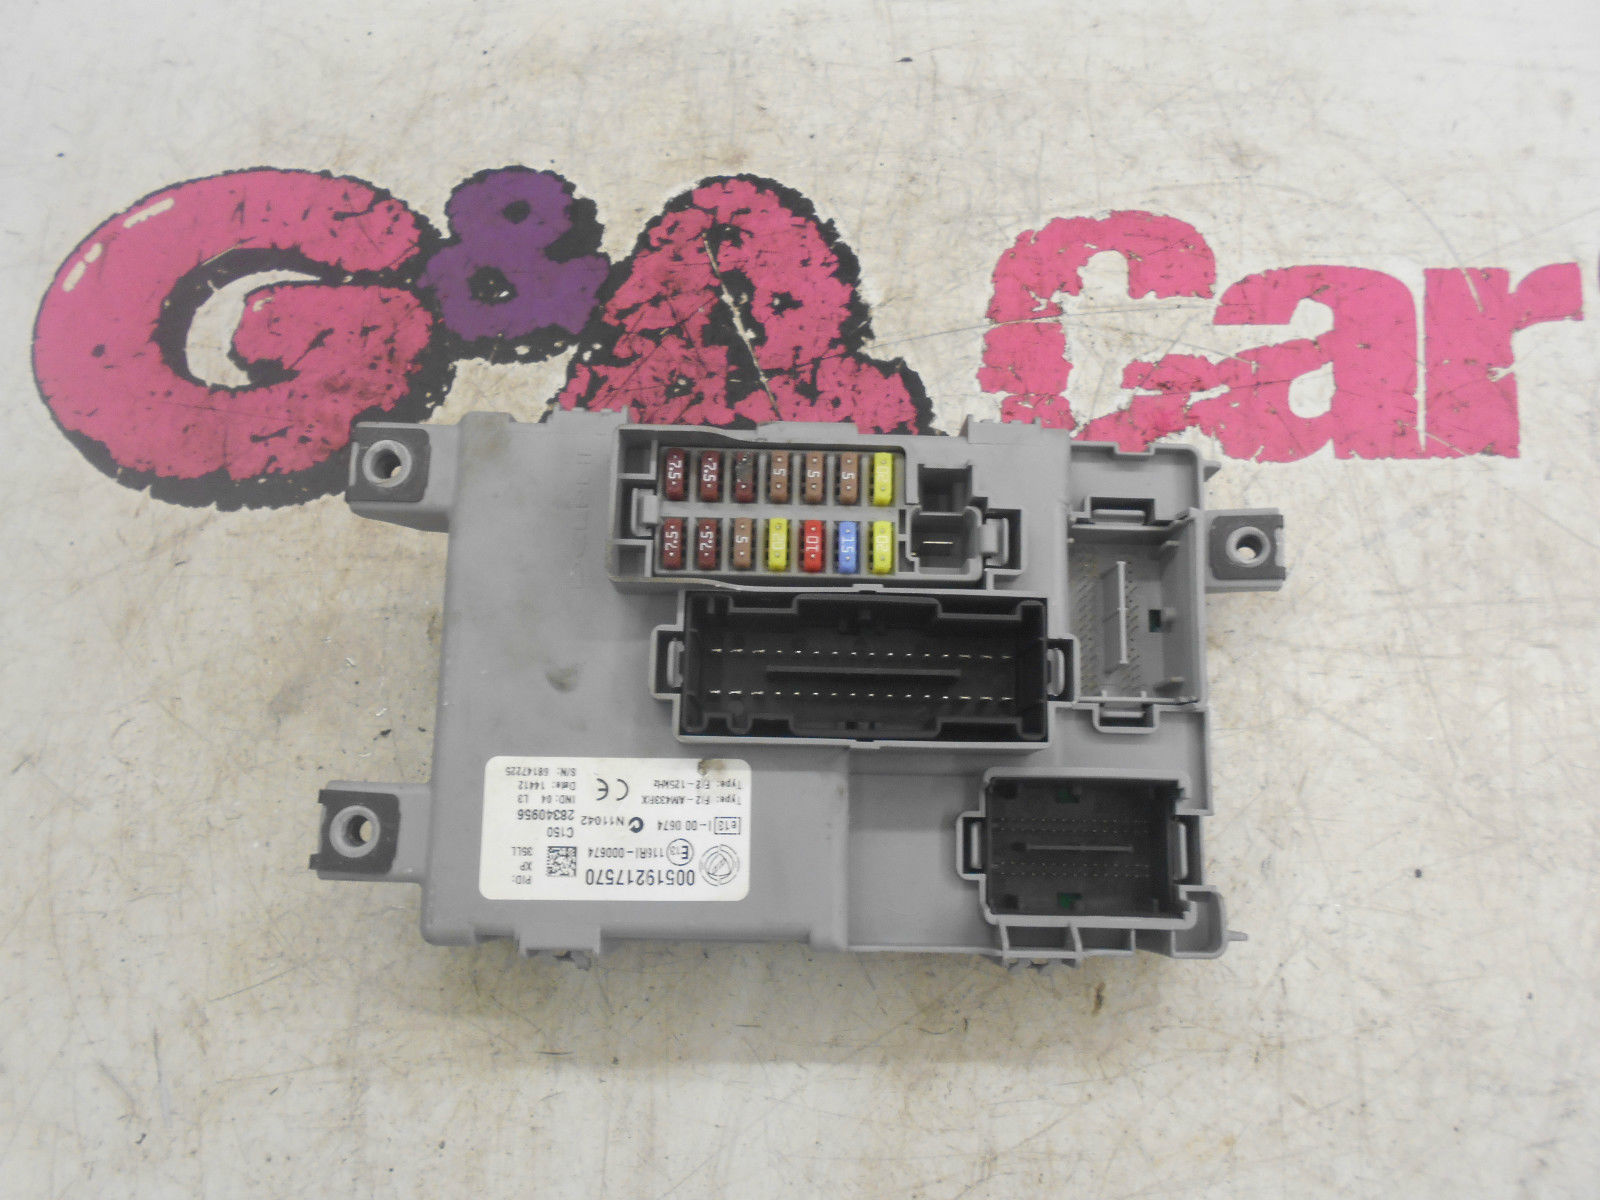 hight resolution of fiat doblo 1 4 16v petrol fuse box fuse board 2009 15